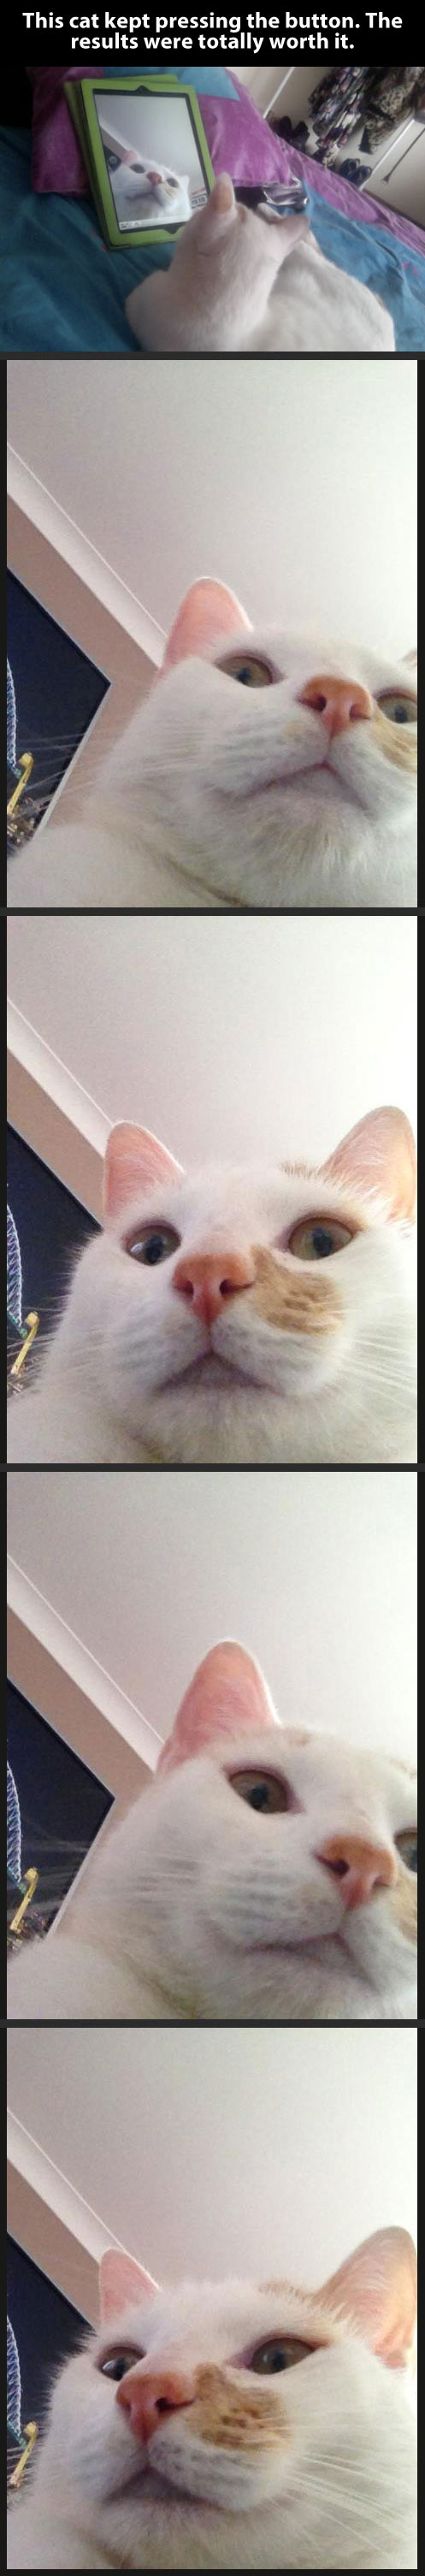 funny-cat-pictures-iPad-alone-faces